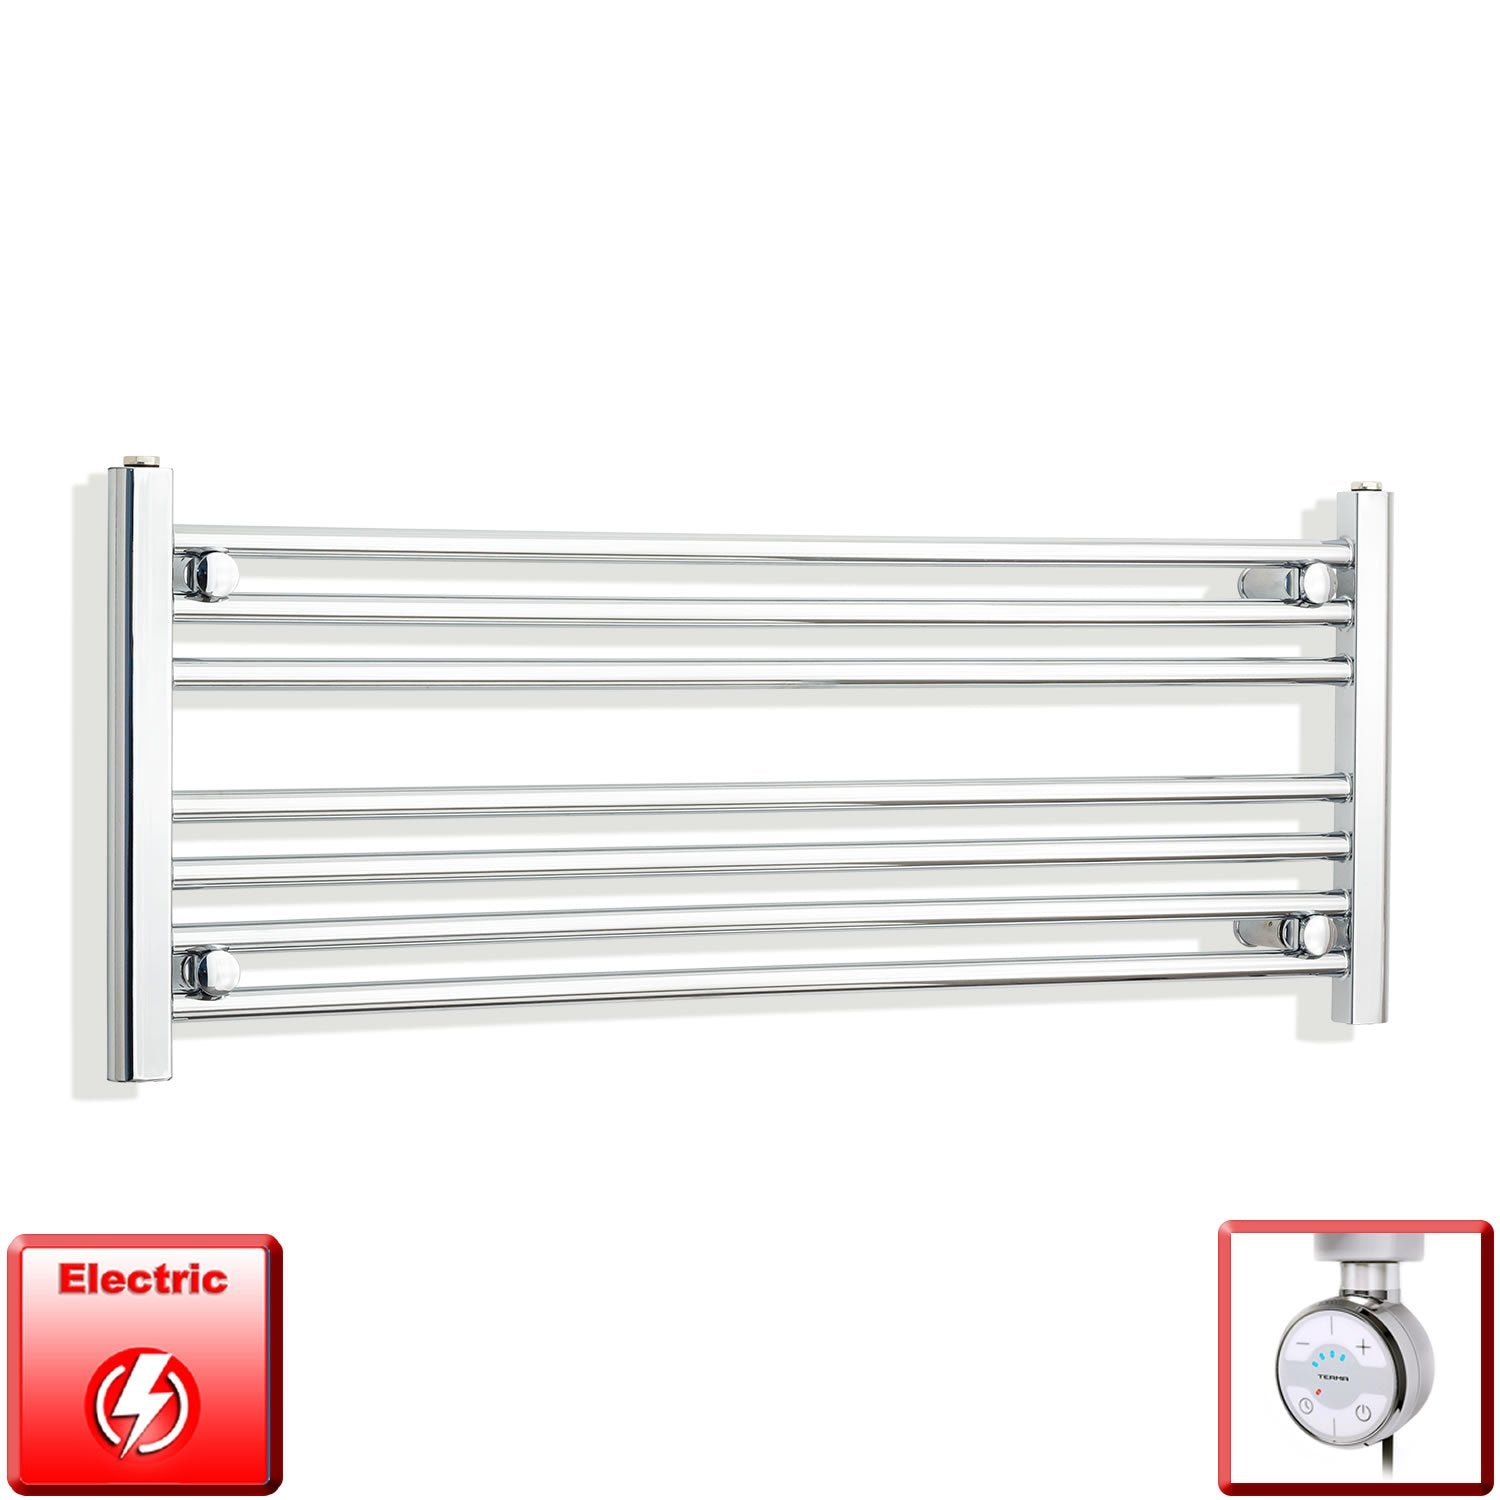 1100mm Wide 400mm High Flat Chrome Pre-Filled Electric Heated Towel Rail Radiator HTR,MOA Thermostatic Element